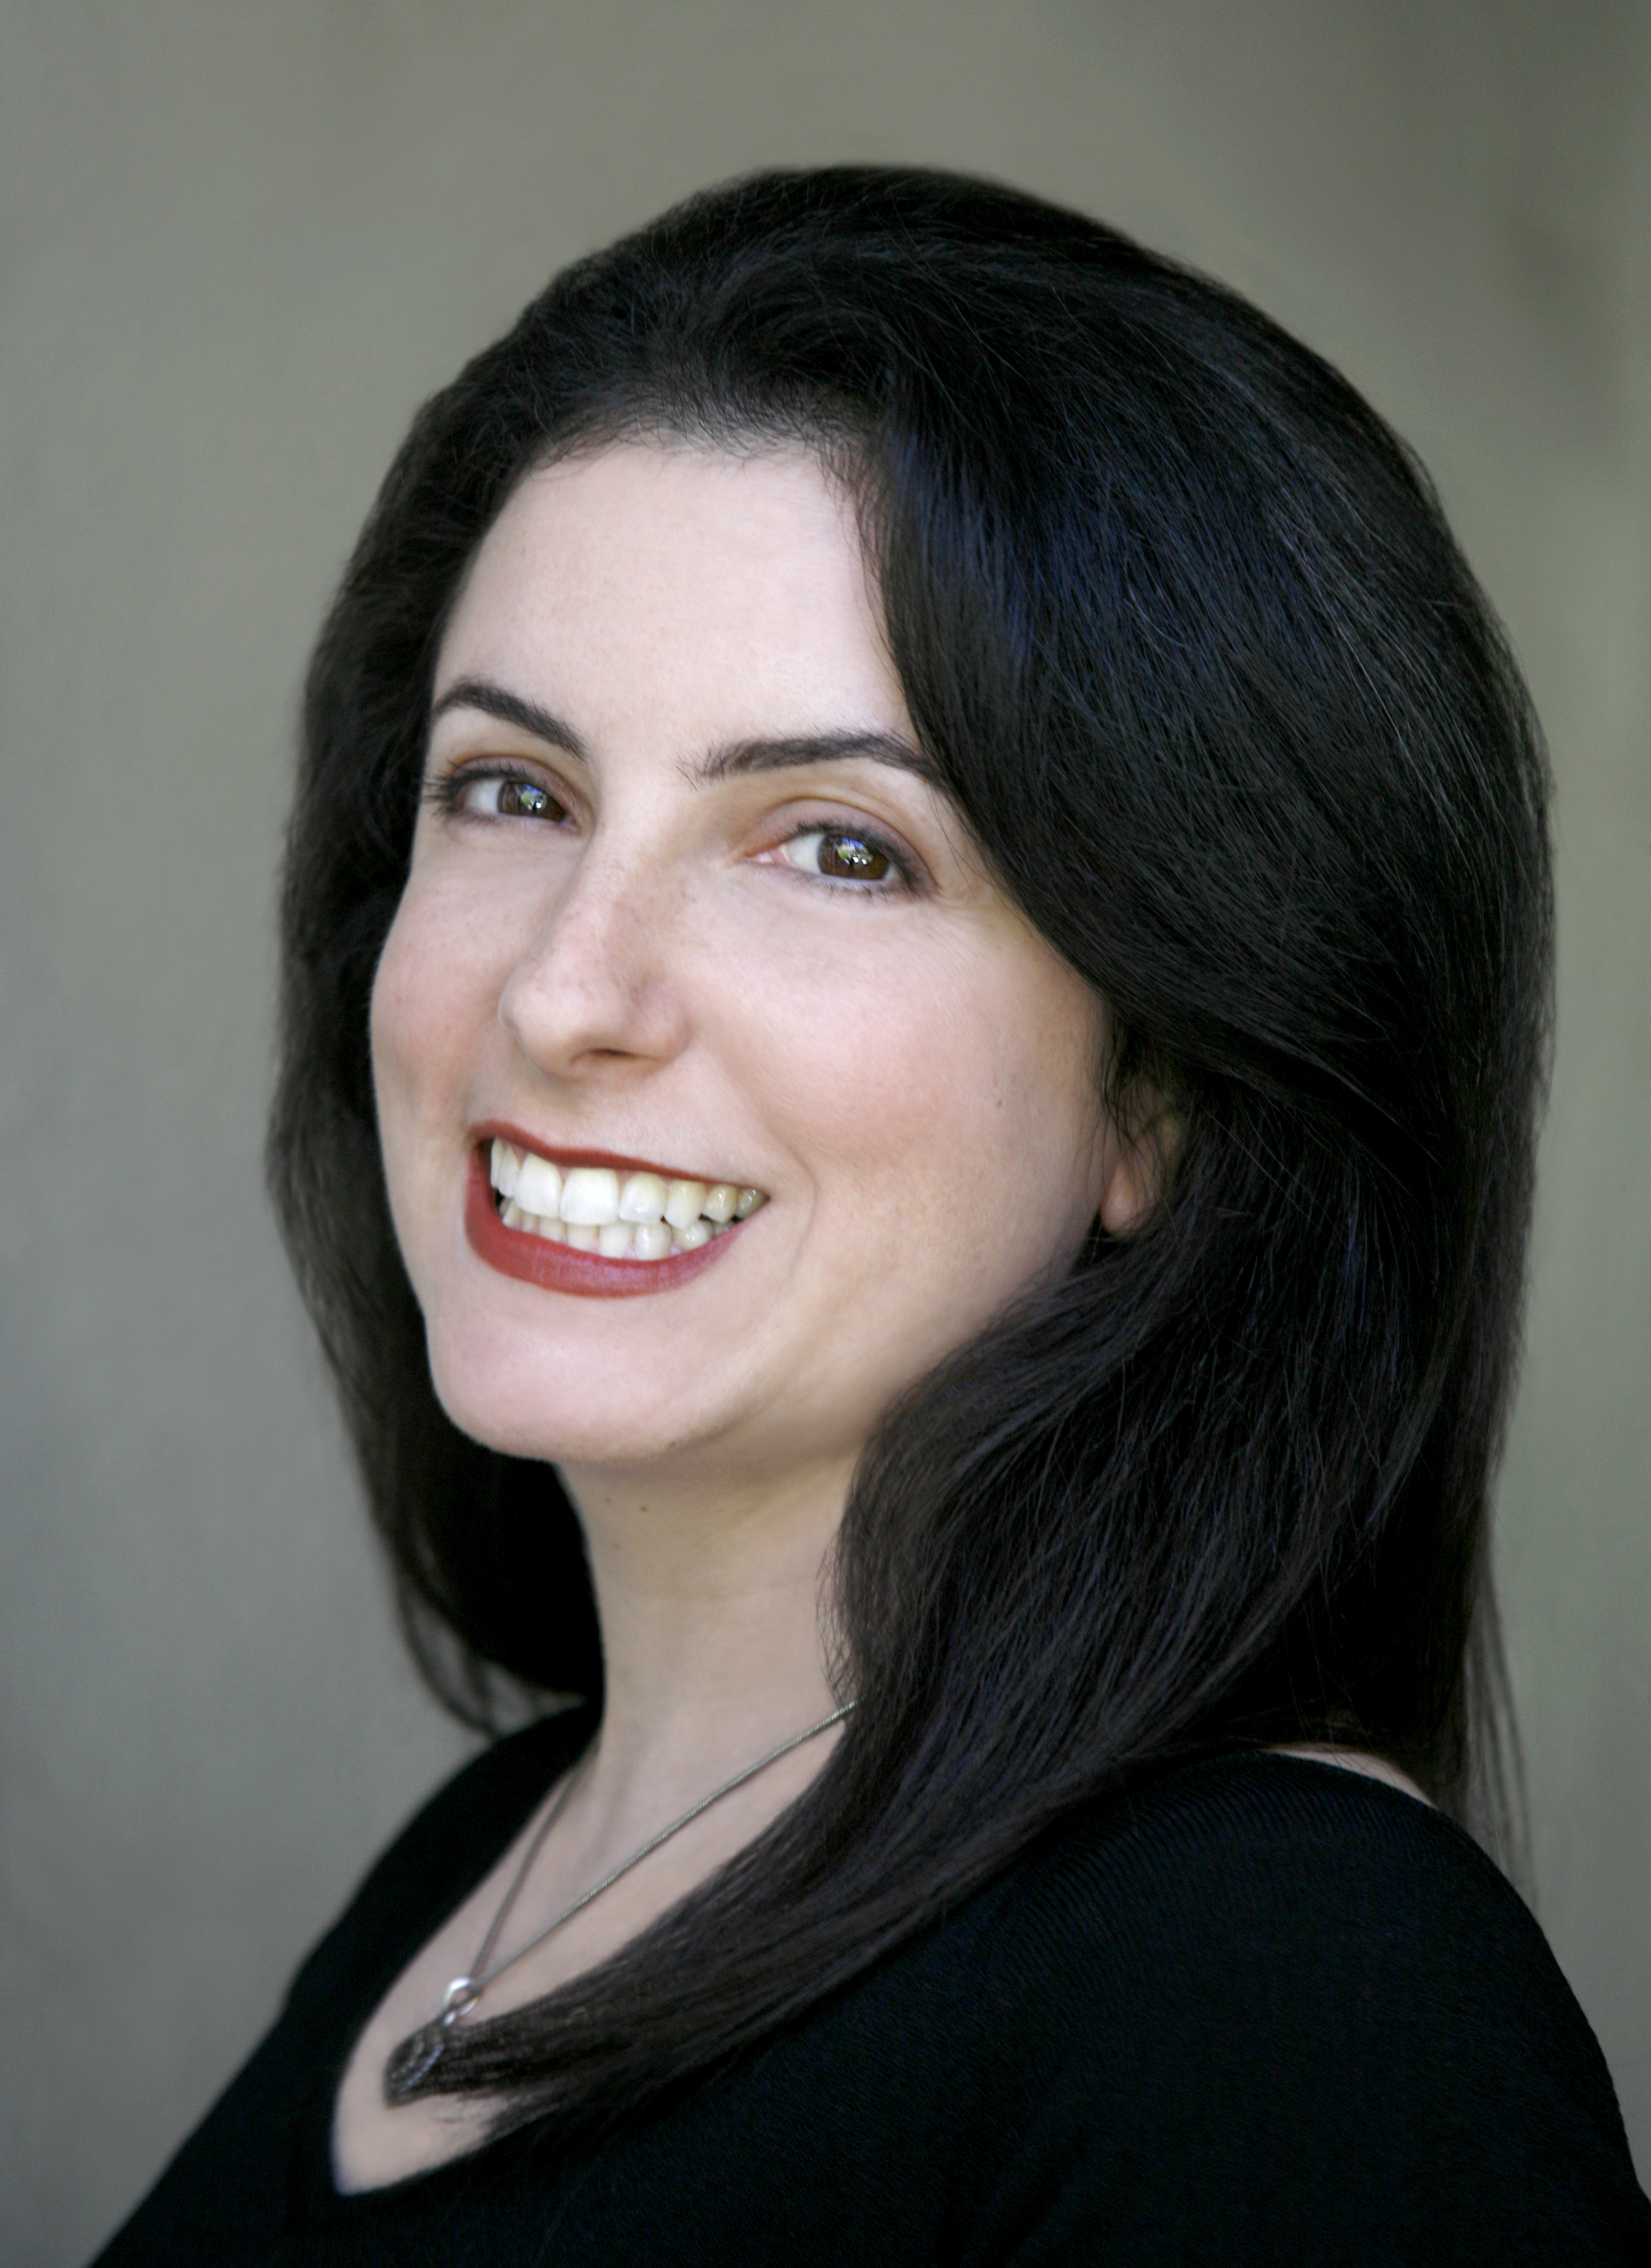 tracey steinberg dating 911 About tracey steinberg: years experience: 6 dateologist tracey steinberg helps young women excel professionally and marry mr right wwwtraceysteinbergcom i can help you excel professionally and marry mr.